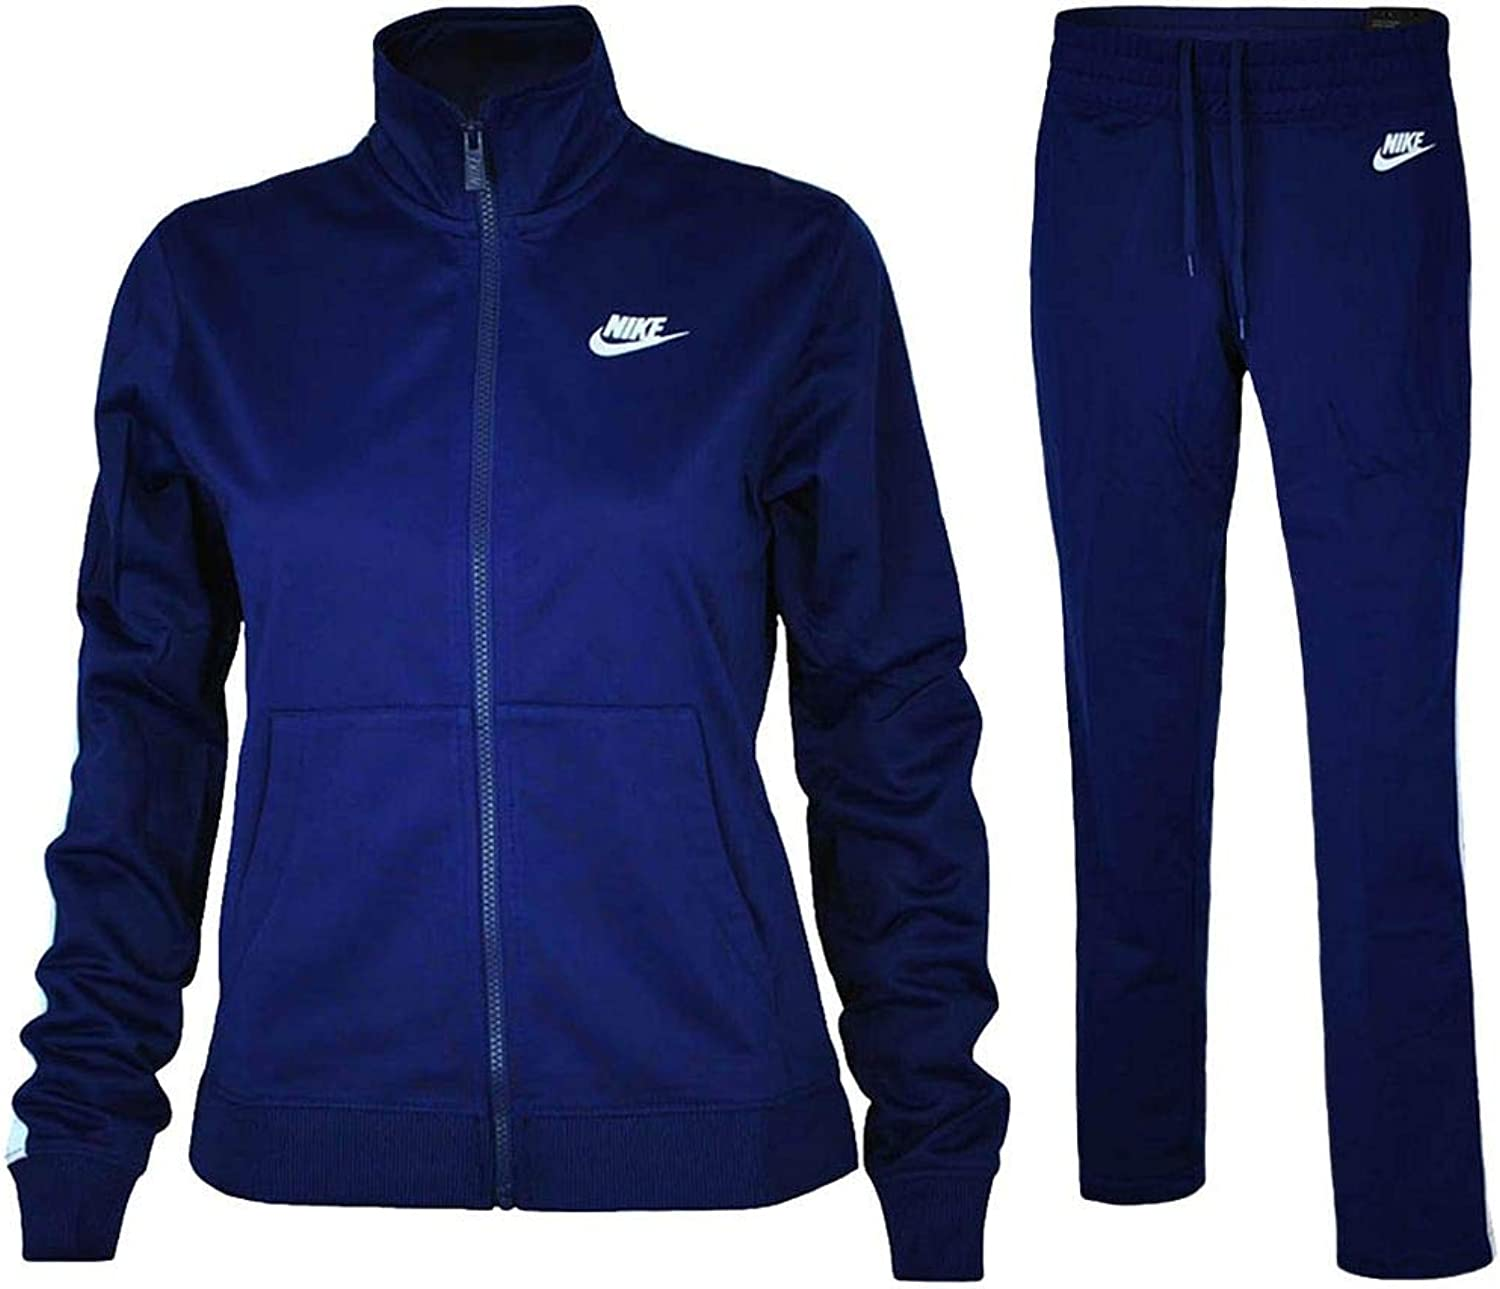 Nike NSW PK OH Tracksuit Women's Sport Track suit Navy White, Sizes M